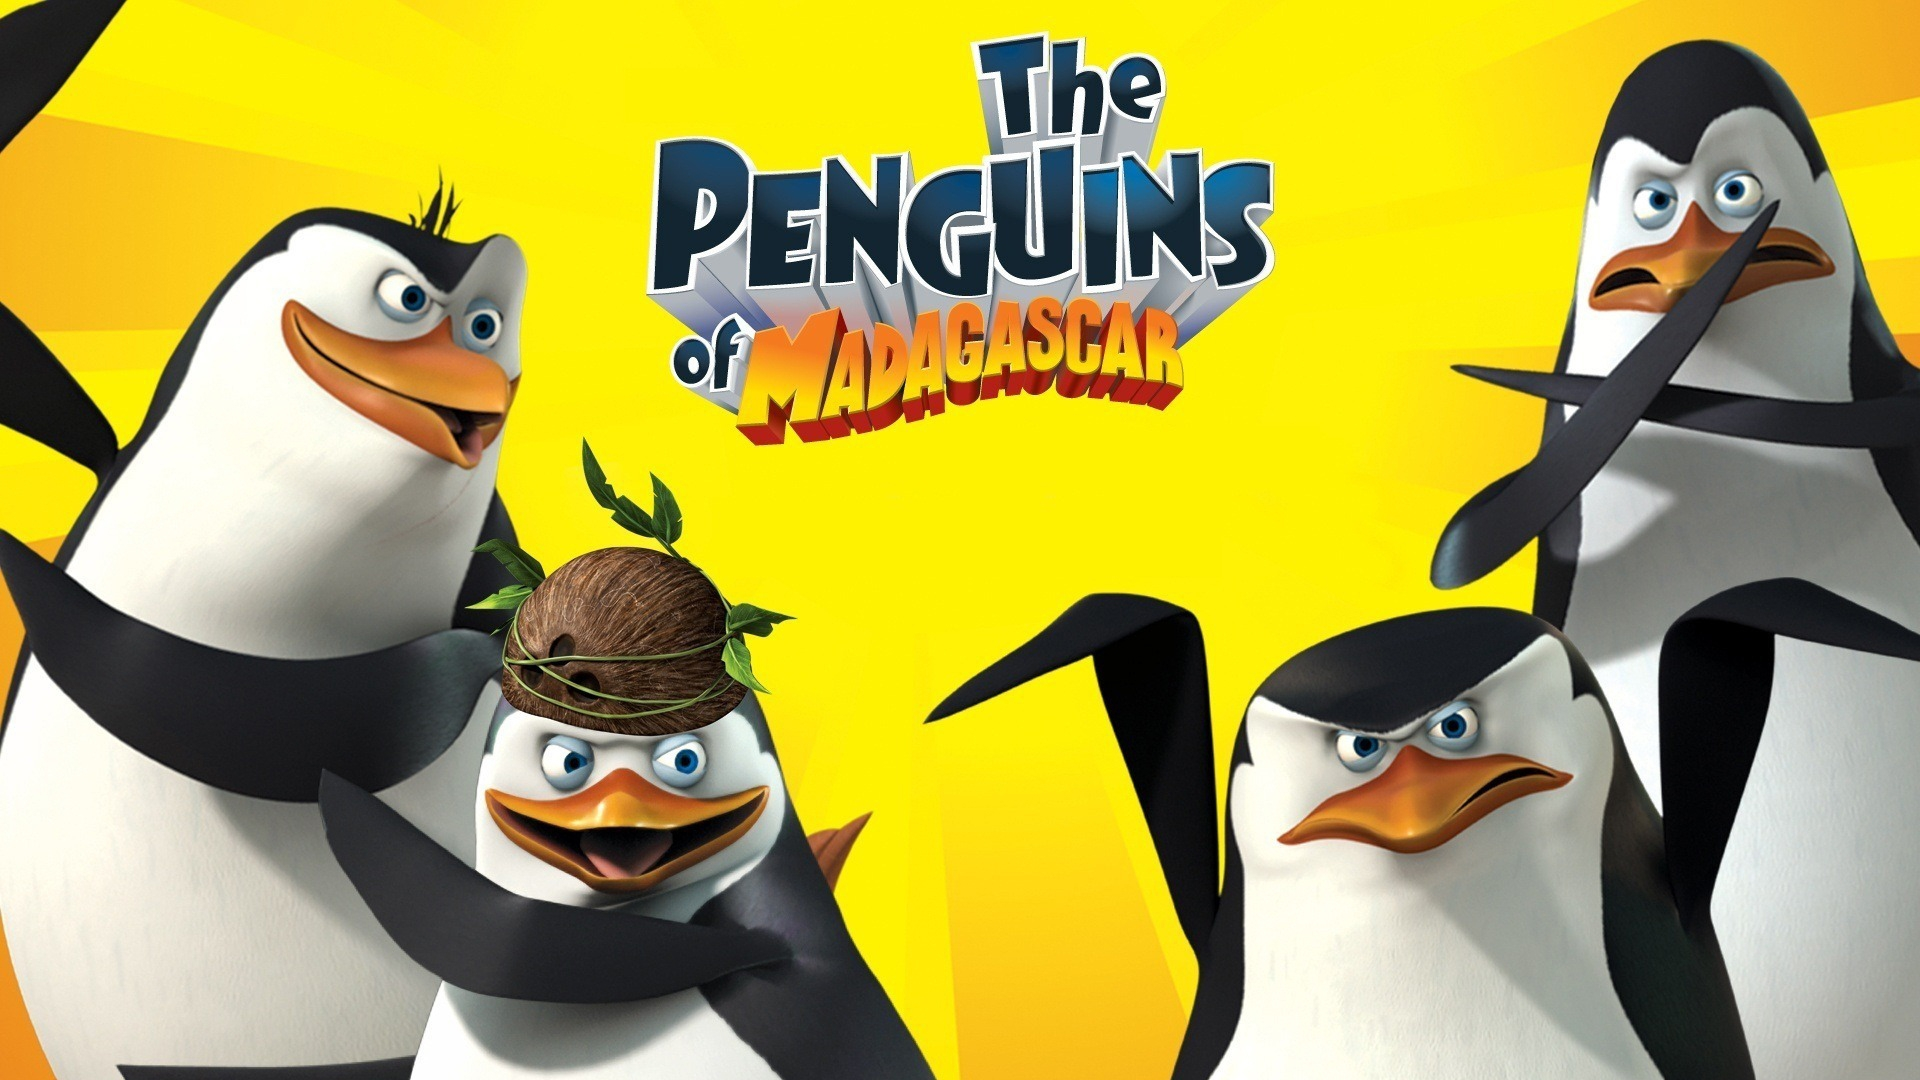 the-penguins-of-madagascar-movie